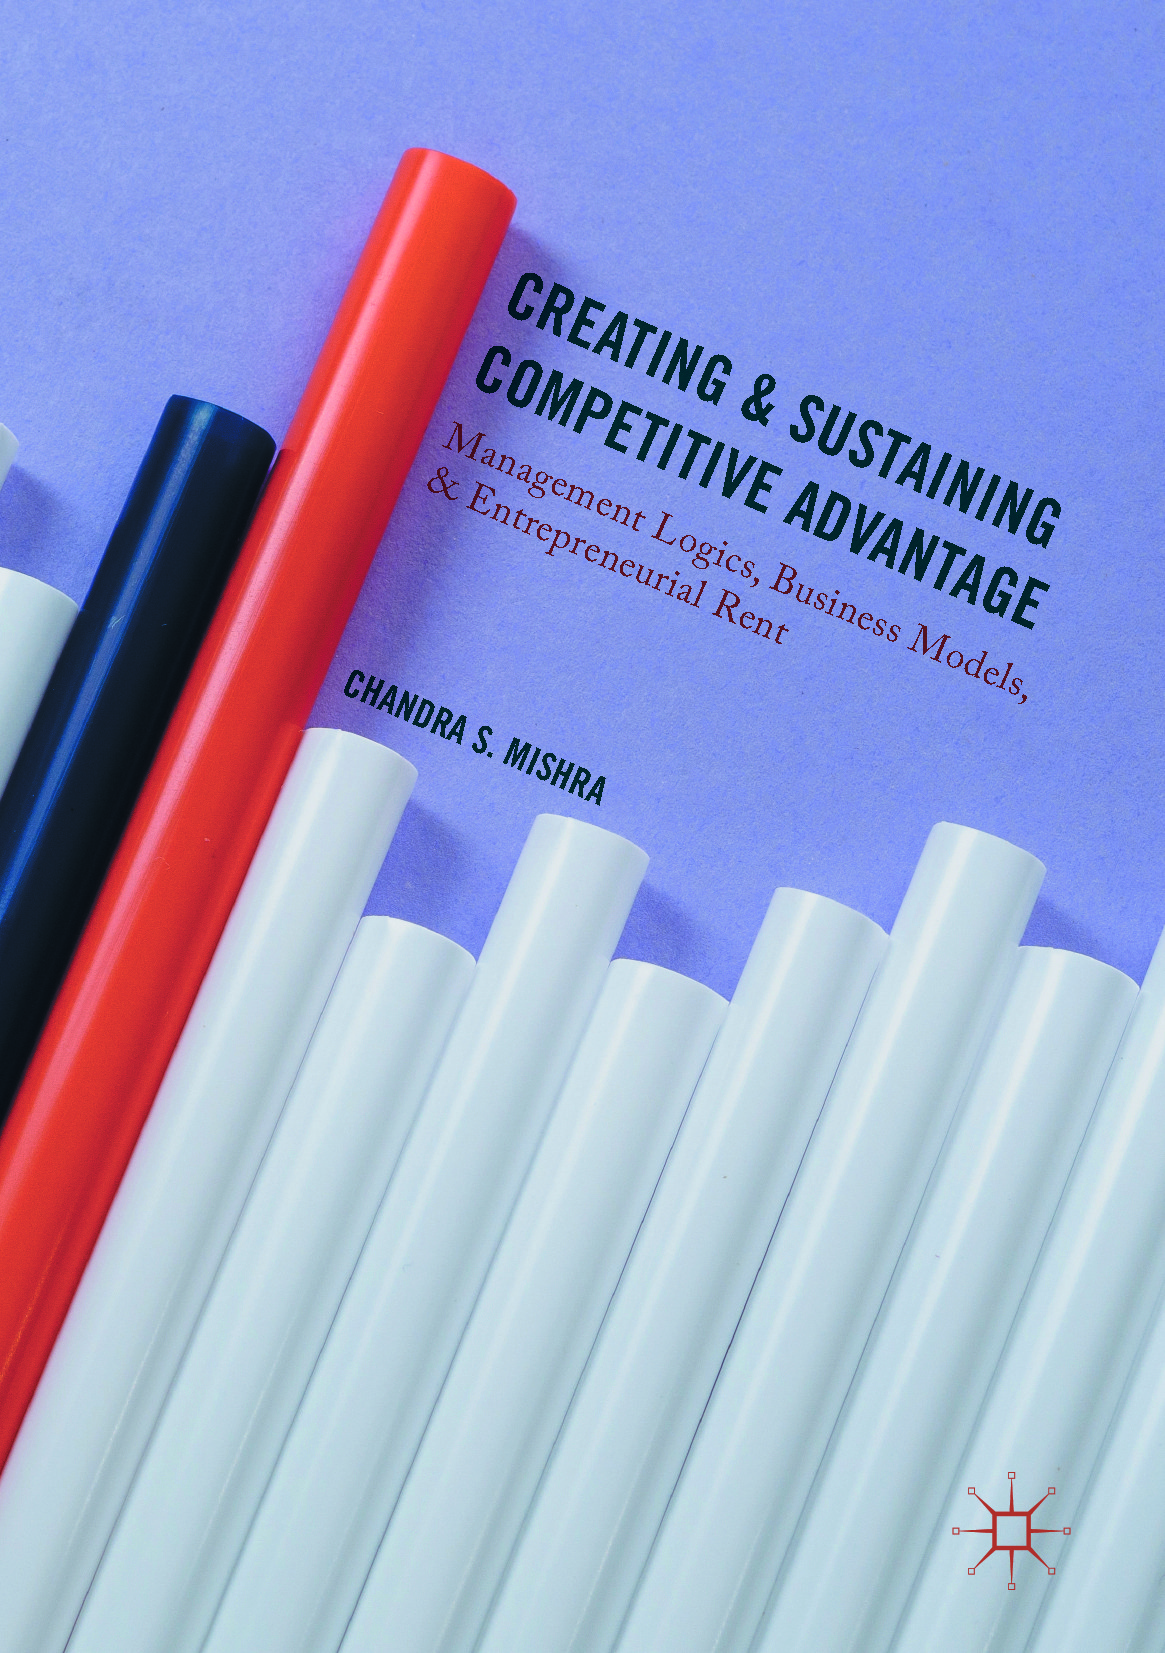 Mishra, Chandra S. - Creating and Sustaining Competitive Advantage, ebook